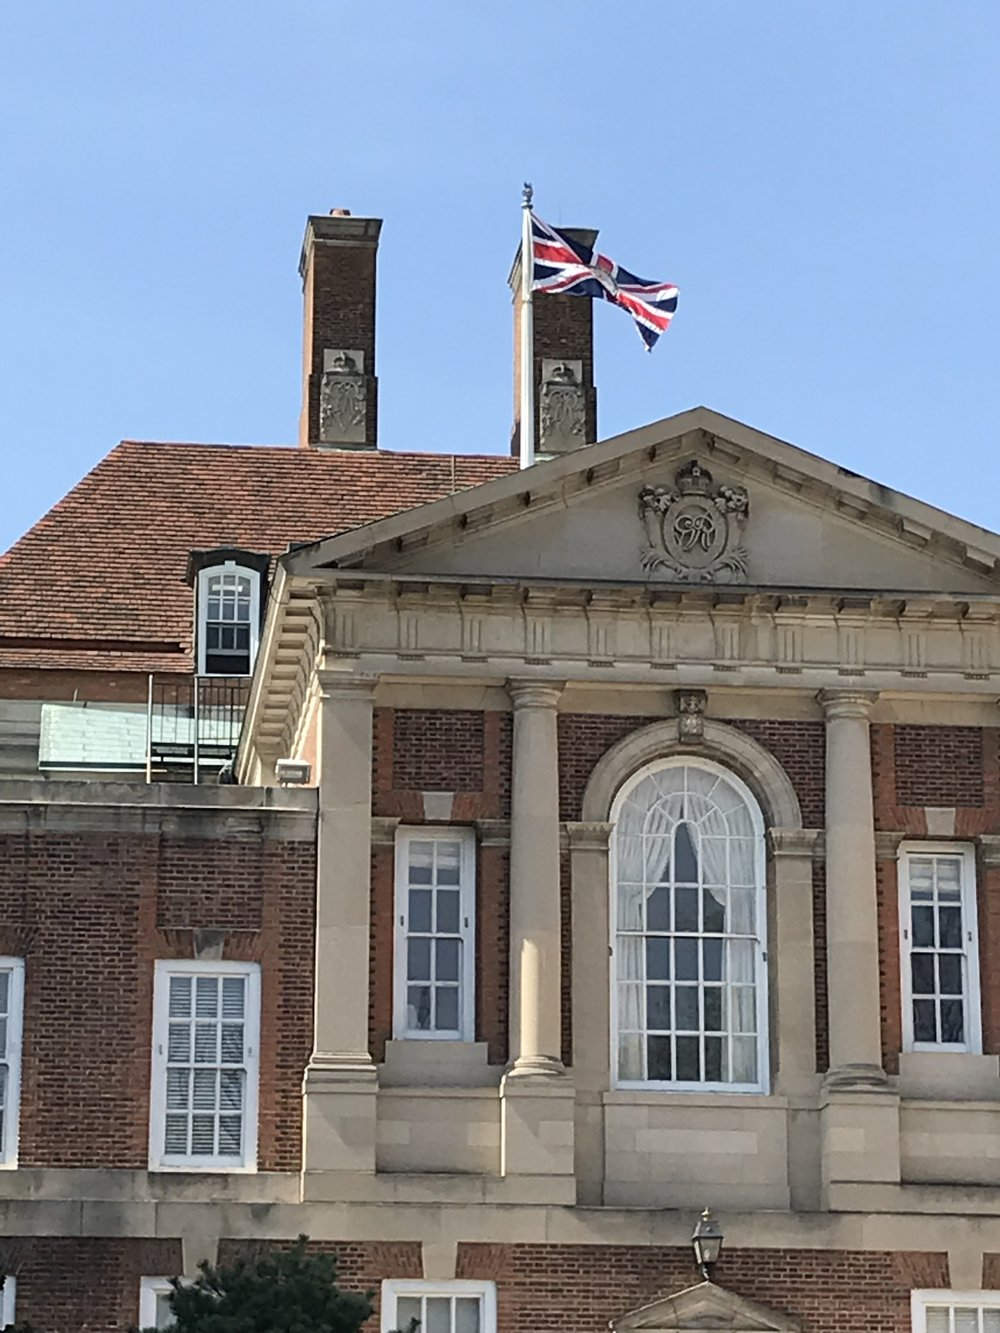 The Embassy of Great Britain.